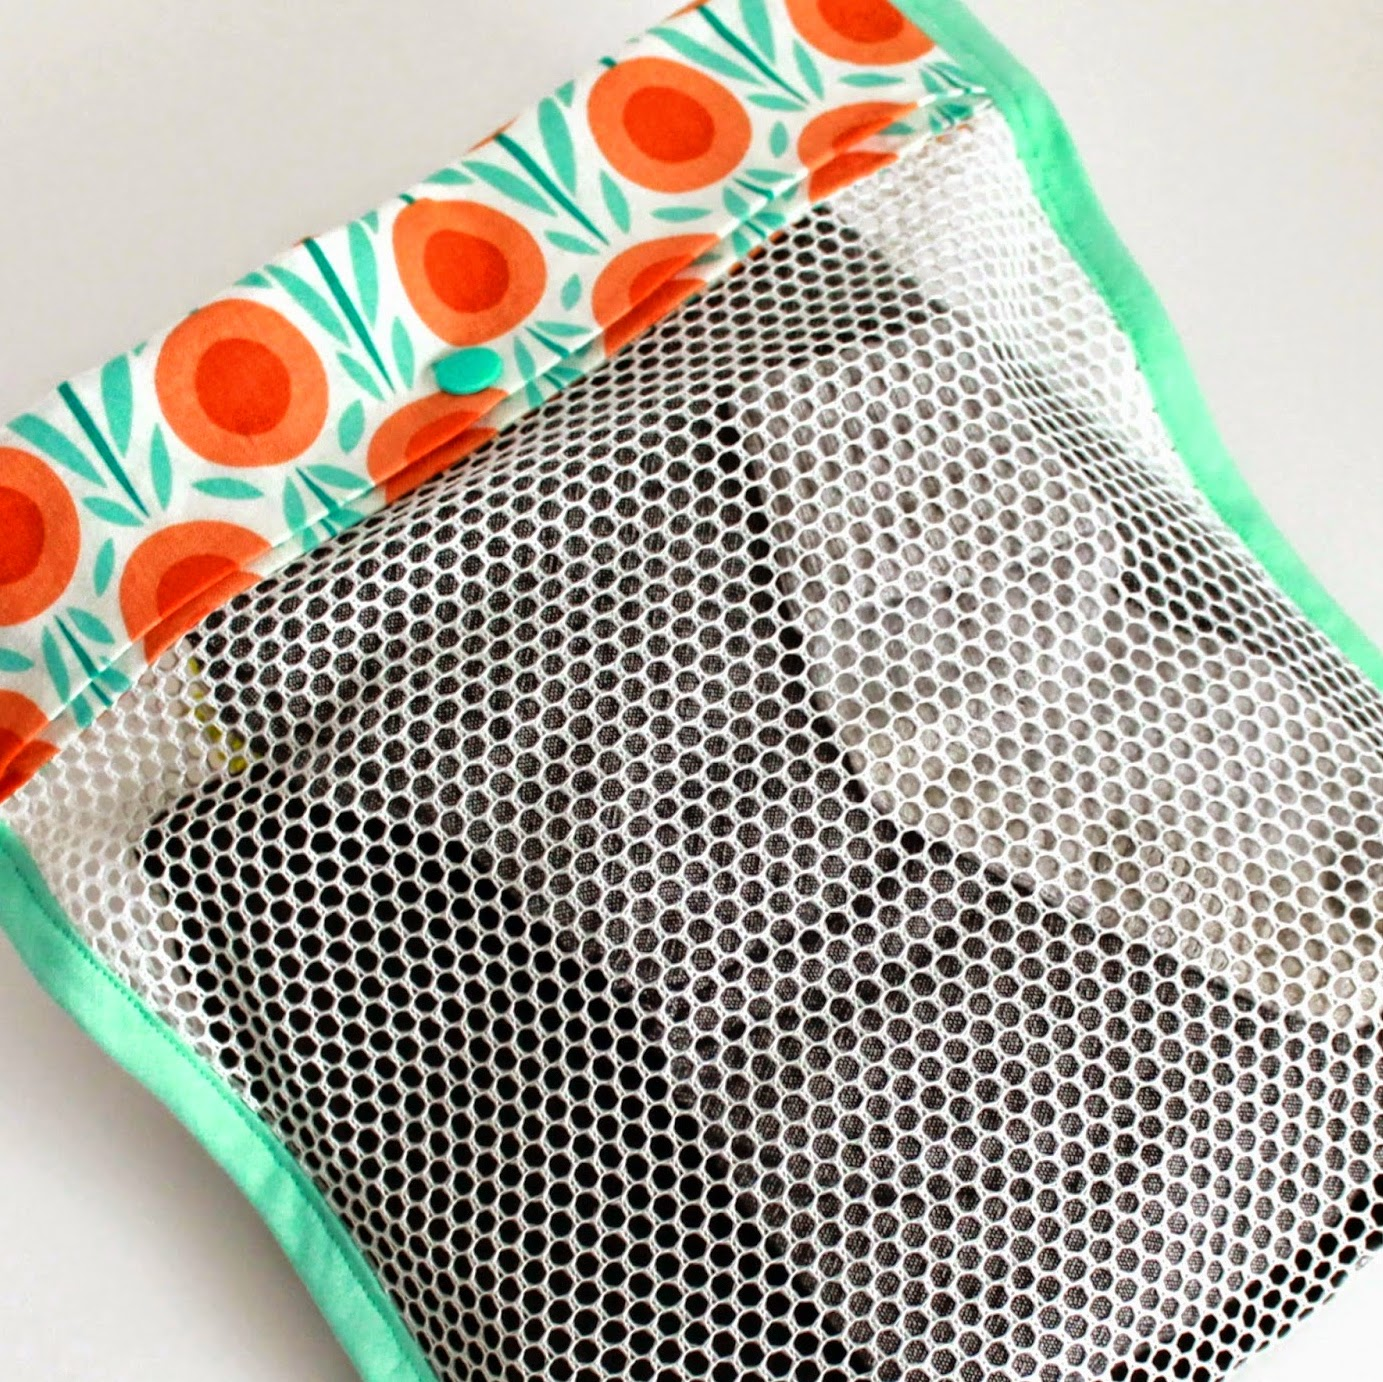 http://theinspiredwren.blogspot.com/2014/07/tutorial-simple-mesh-bag.html